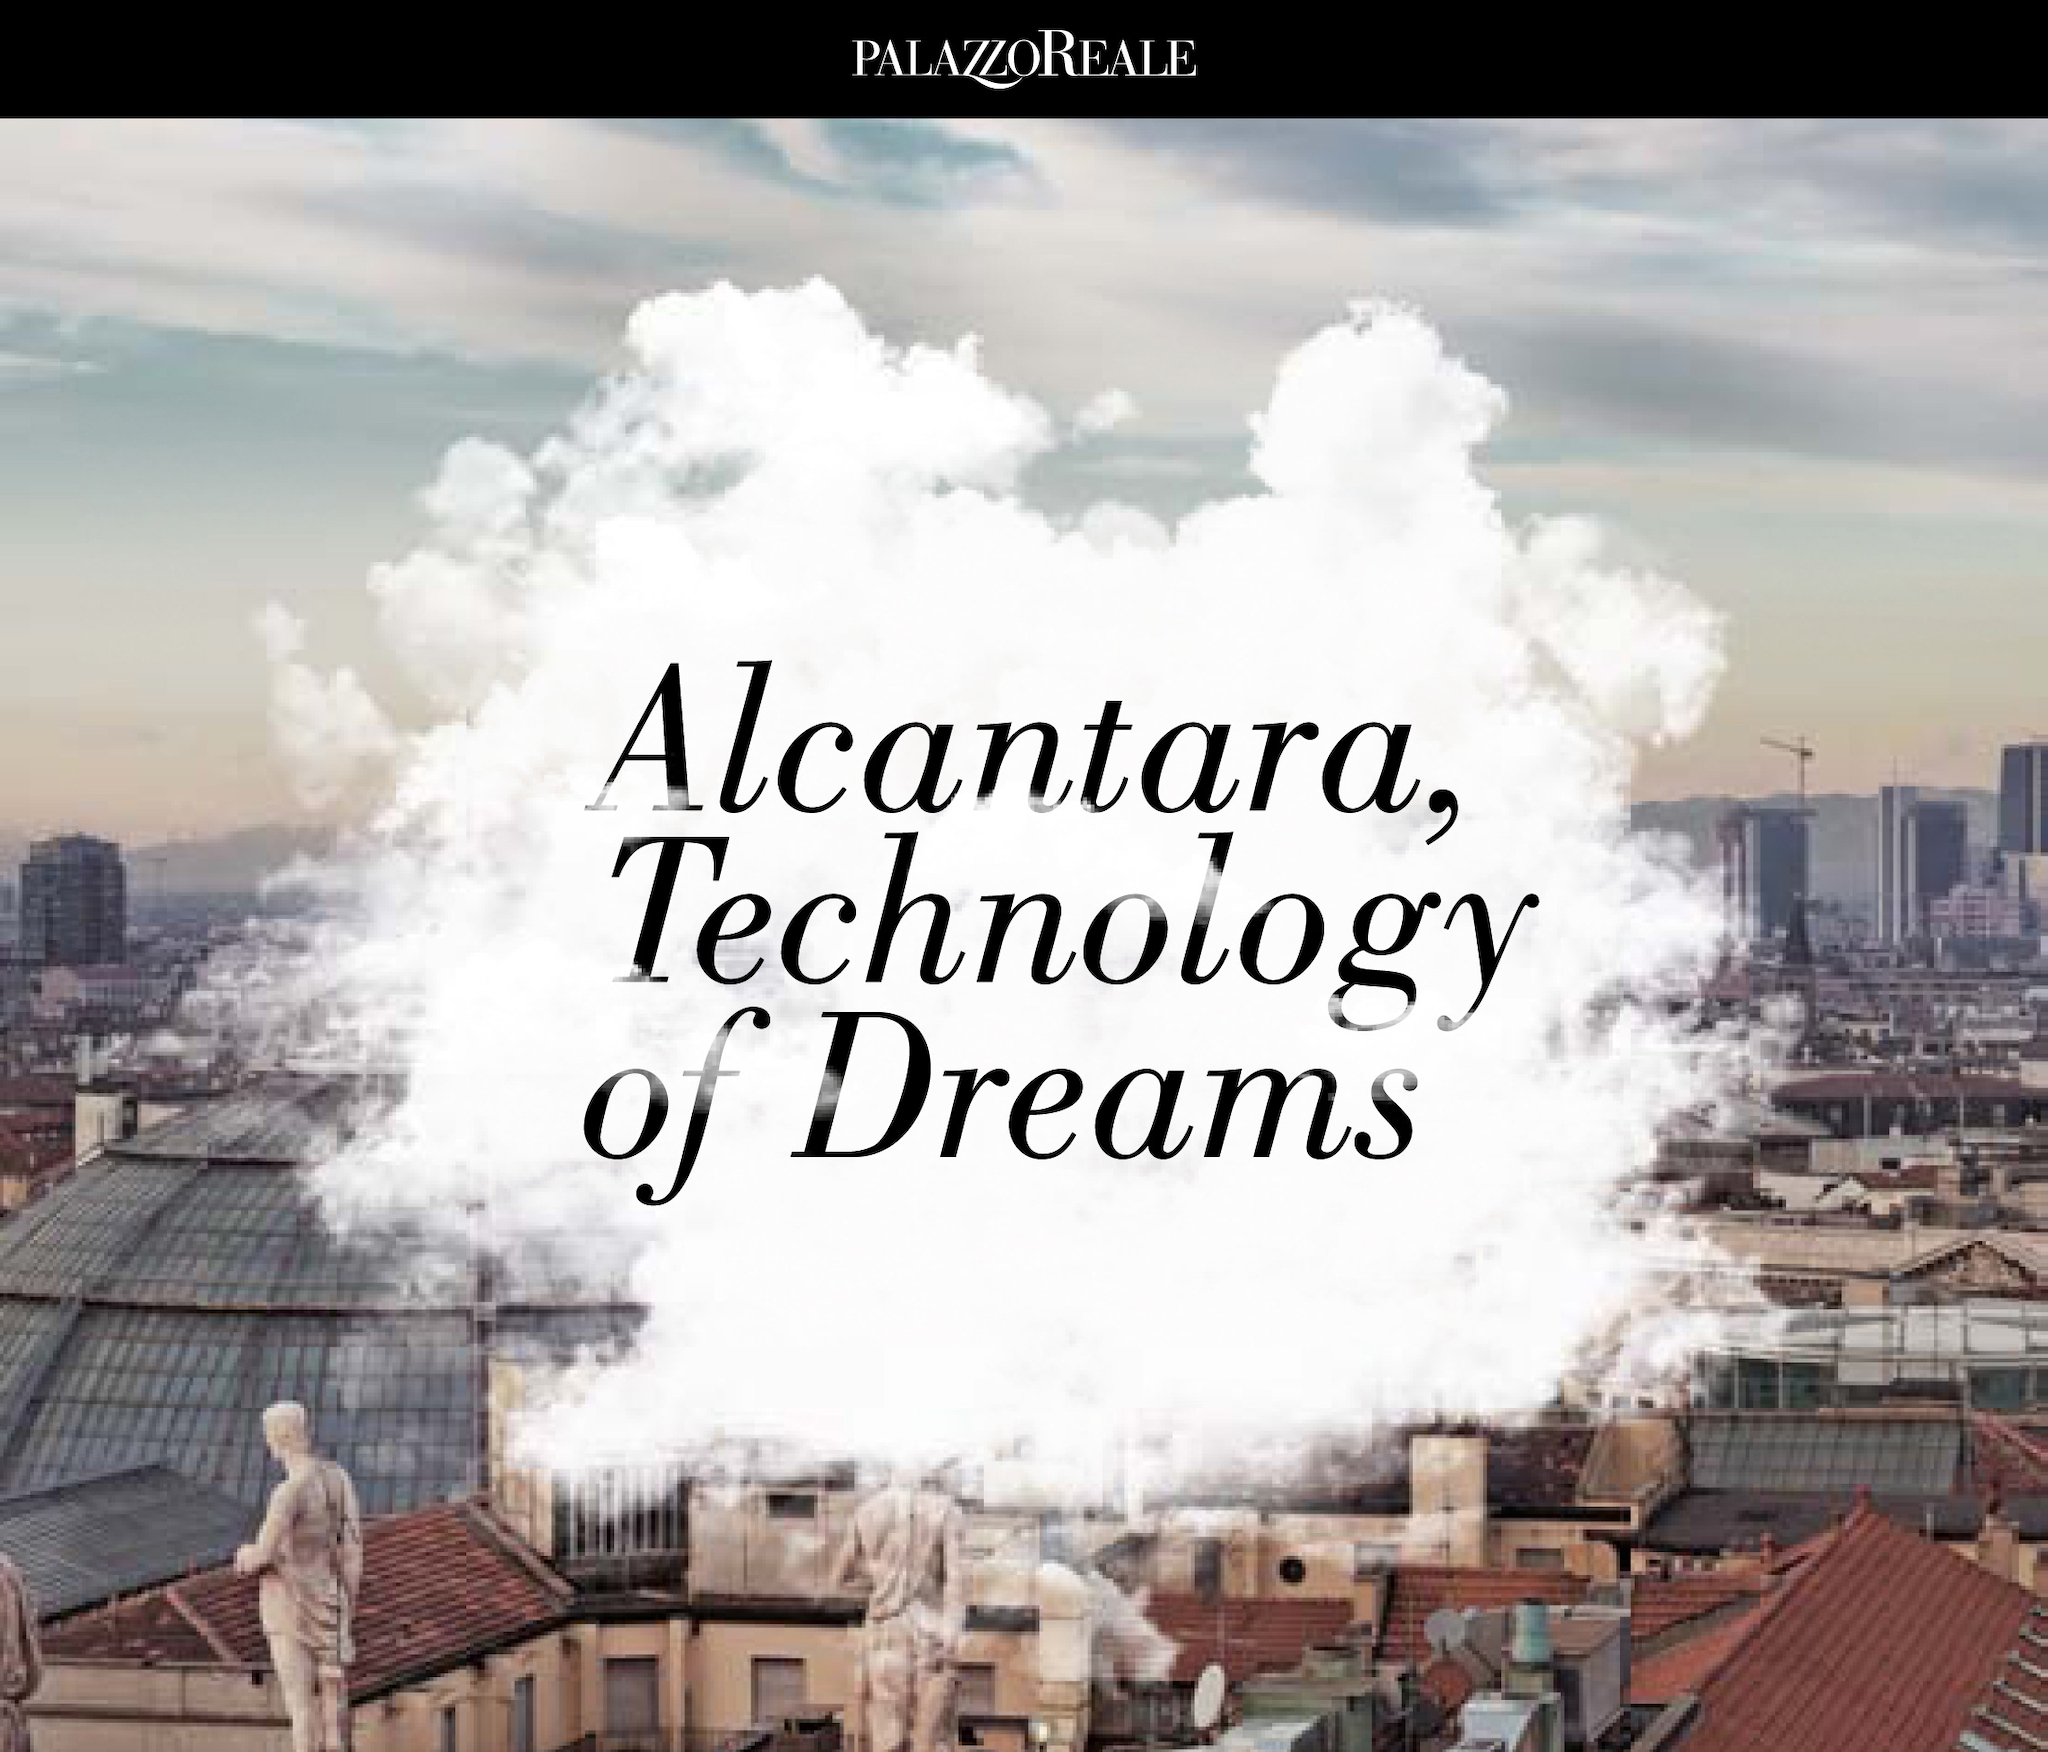 Alcantara, Technology of Dreams